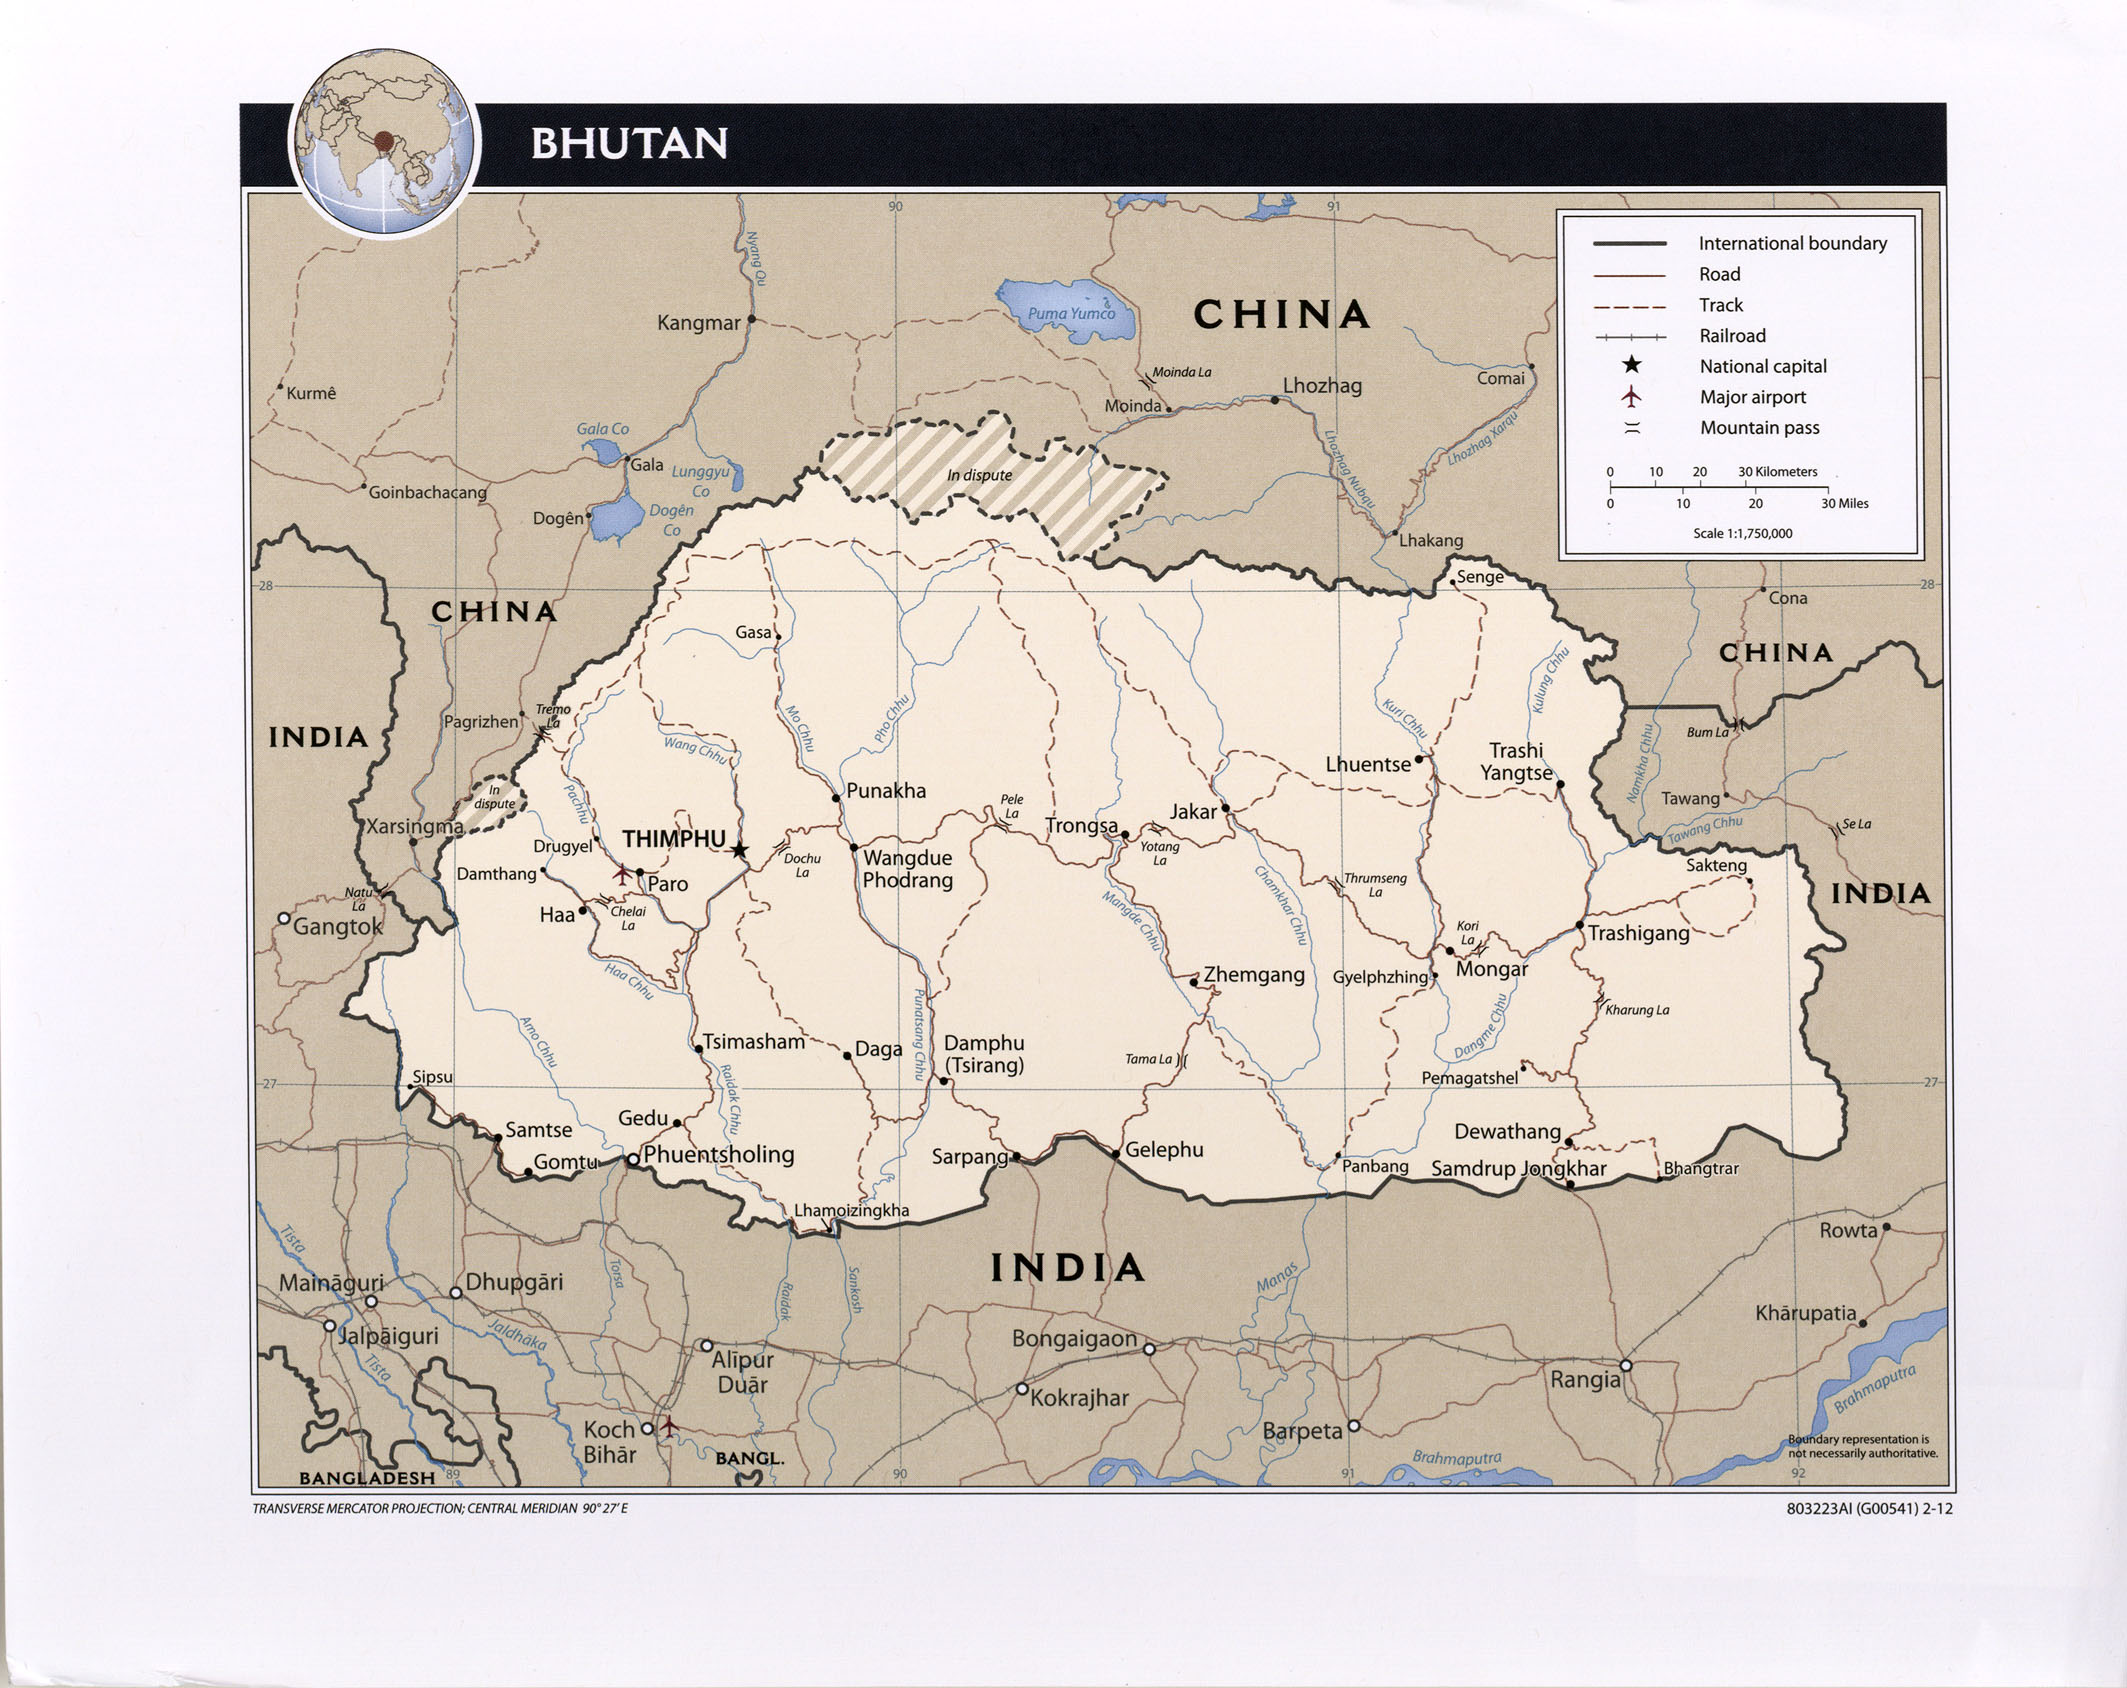 Bhutan Maps - Perry-Castañeda Map Collection - UT Liry Online on map of chile, united states of america, map of india, map of peru, map of sri lanka, map of japan, map of nepal, map of myanmar, map of k2, jetsun pema, map of china, map of middle east, map of iraq, map of singapore, map of tibet, south asia, sri lanka, map of brunei, map of philippines, map of liechtenstein, map of bangladesh, map of turkey, map of himalayas, map of asia,